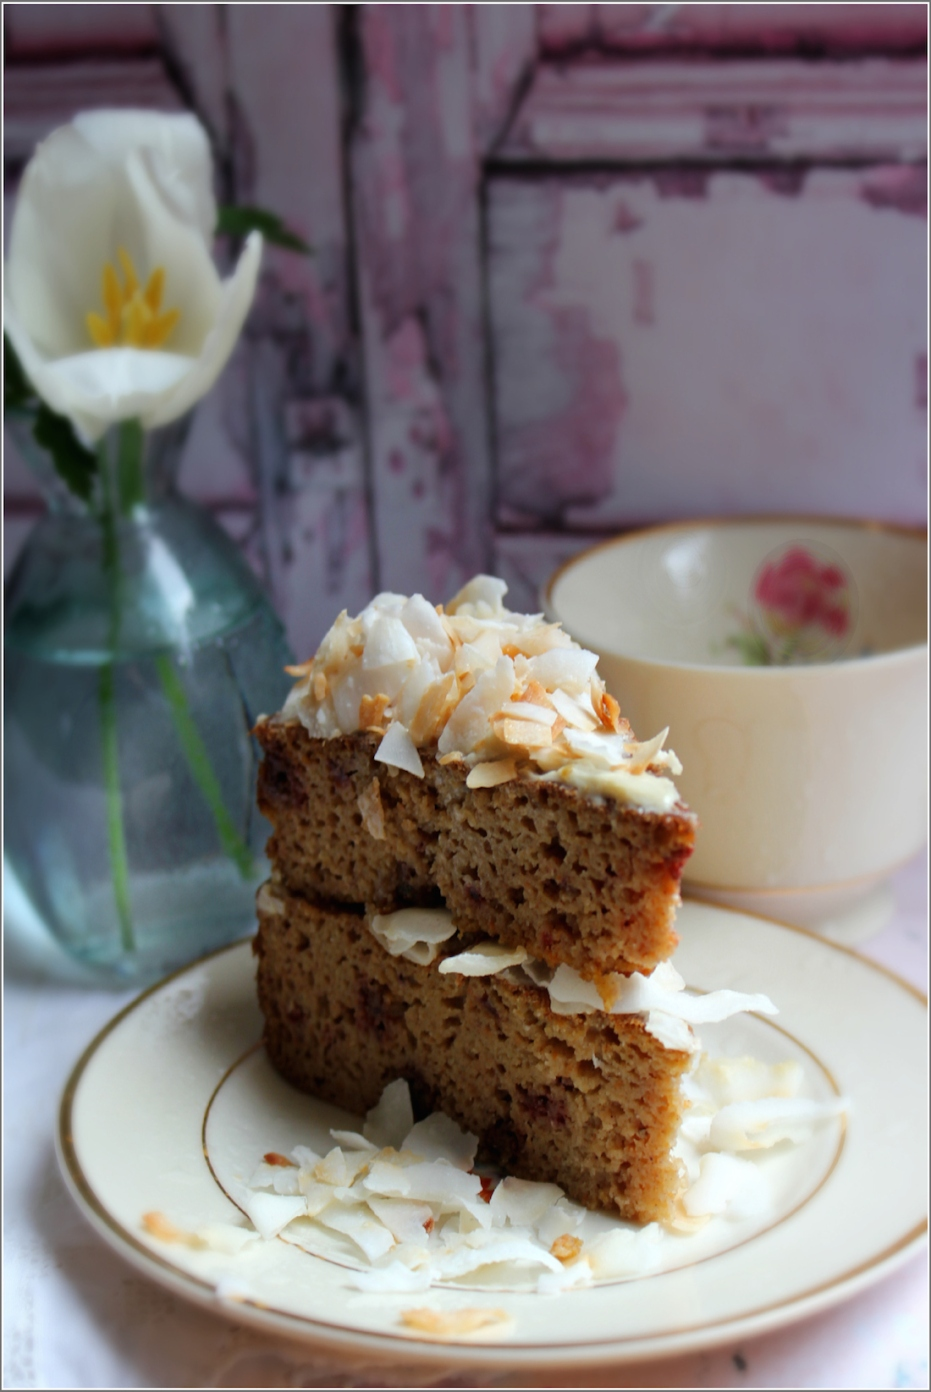 Make Healthy Choices, Gluten-Free Carrot & Coconut Cake